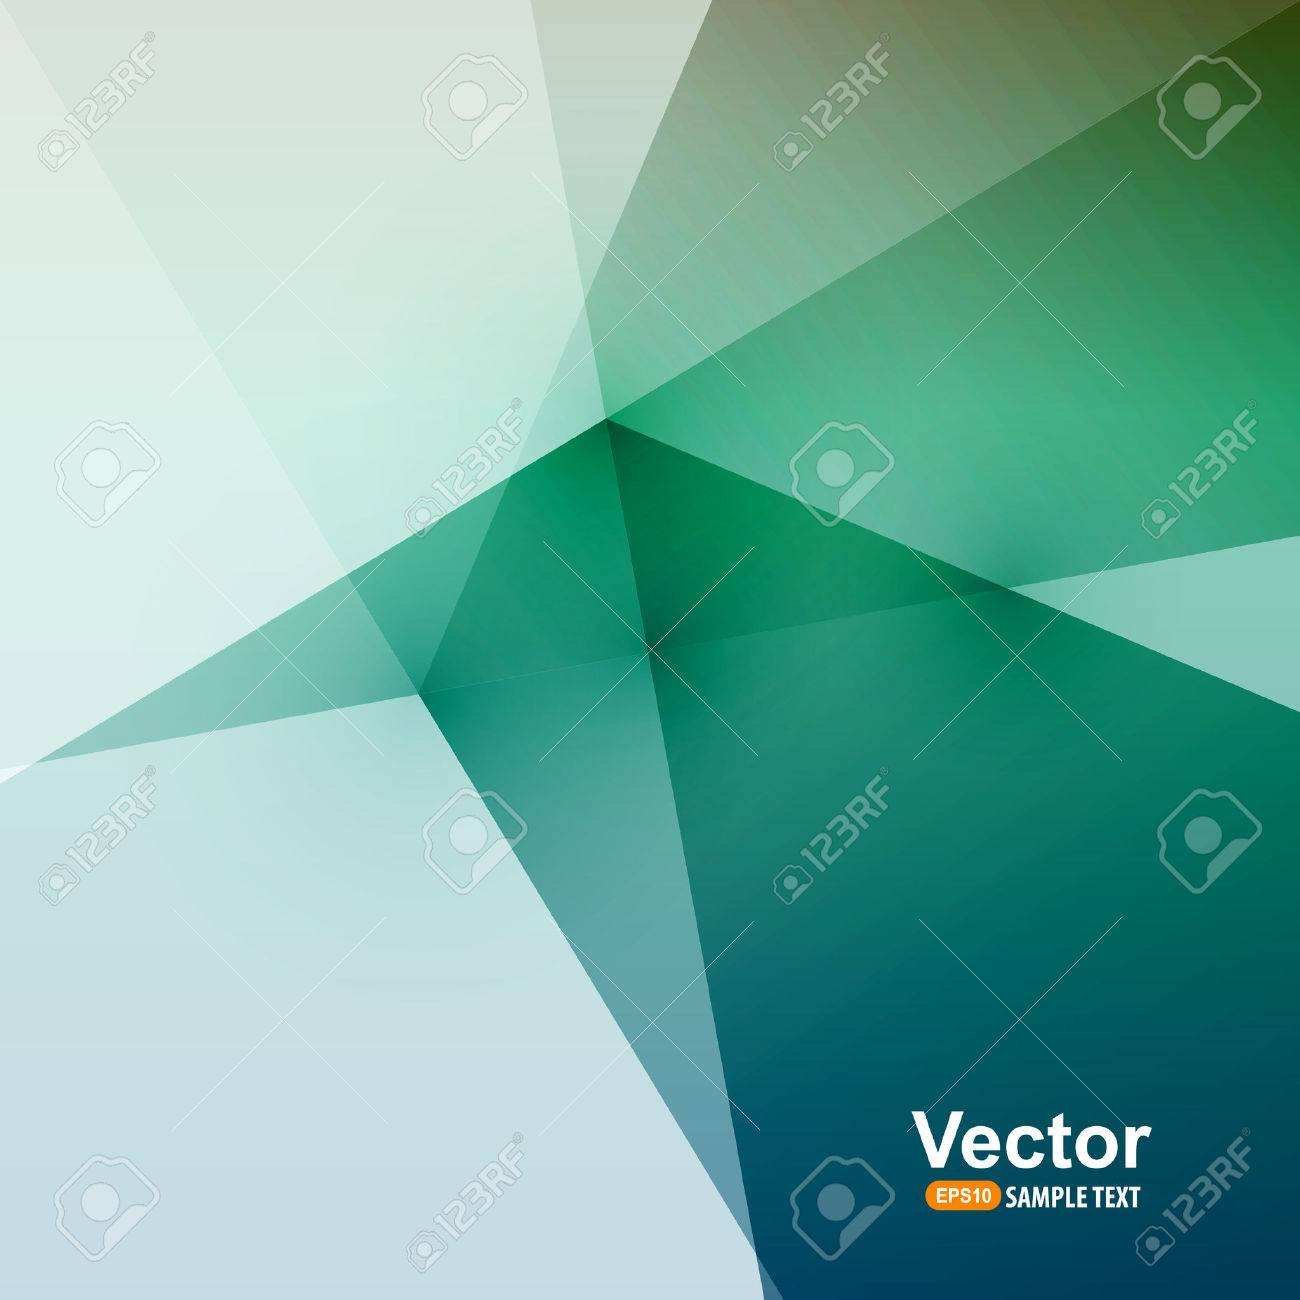 Abstract 3d wire background - 51811877